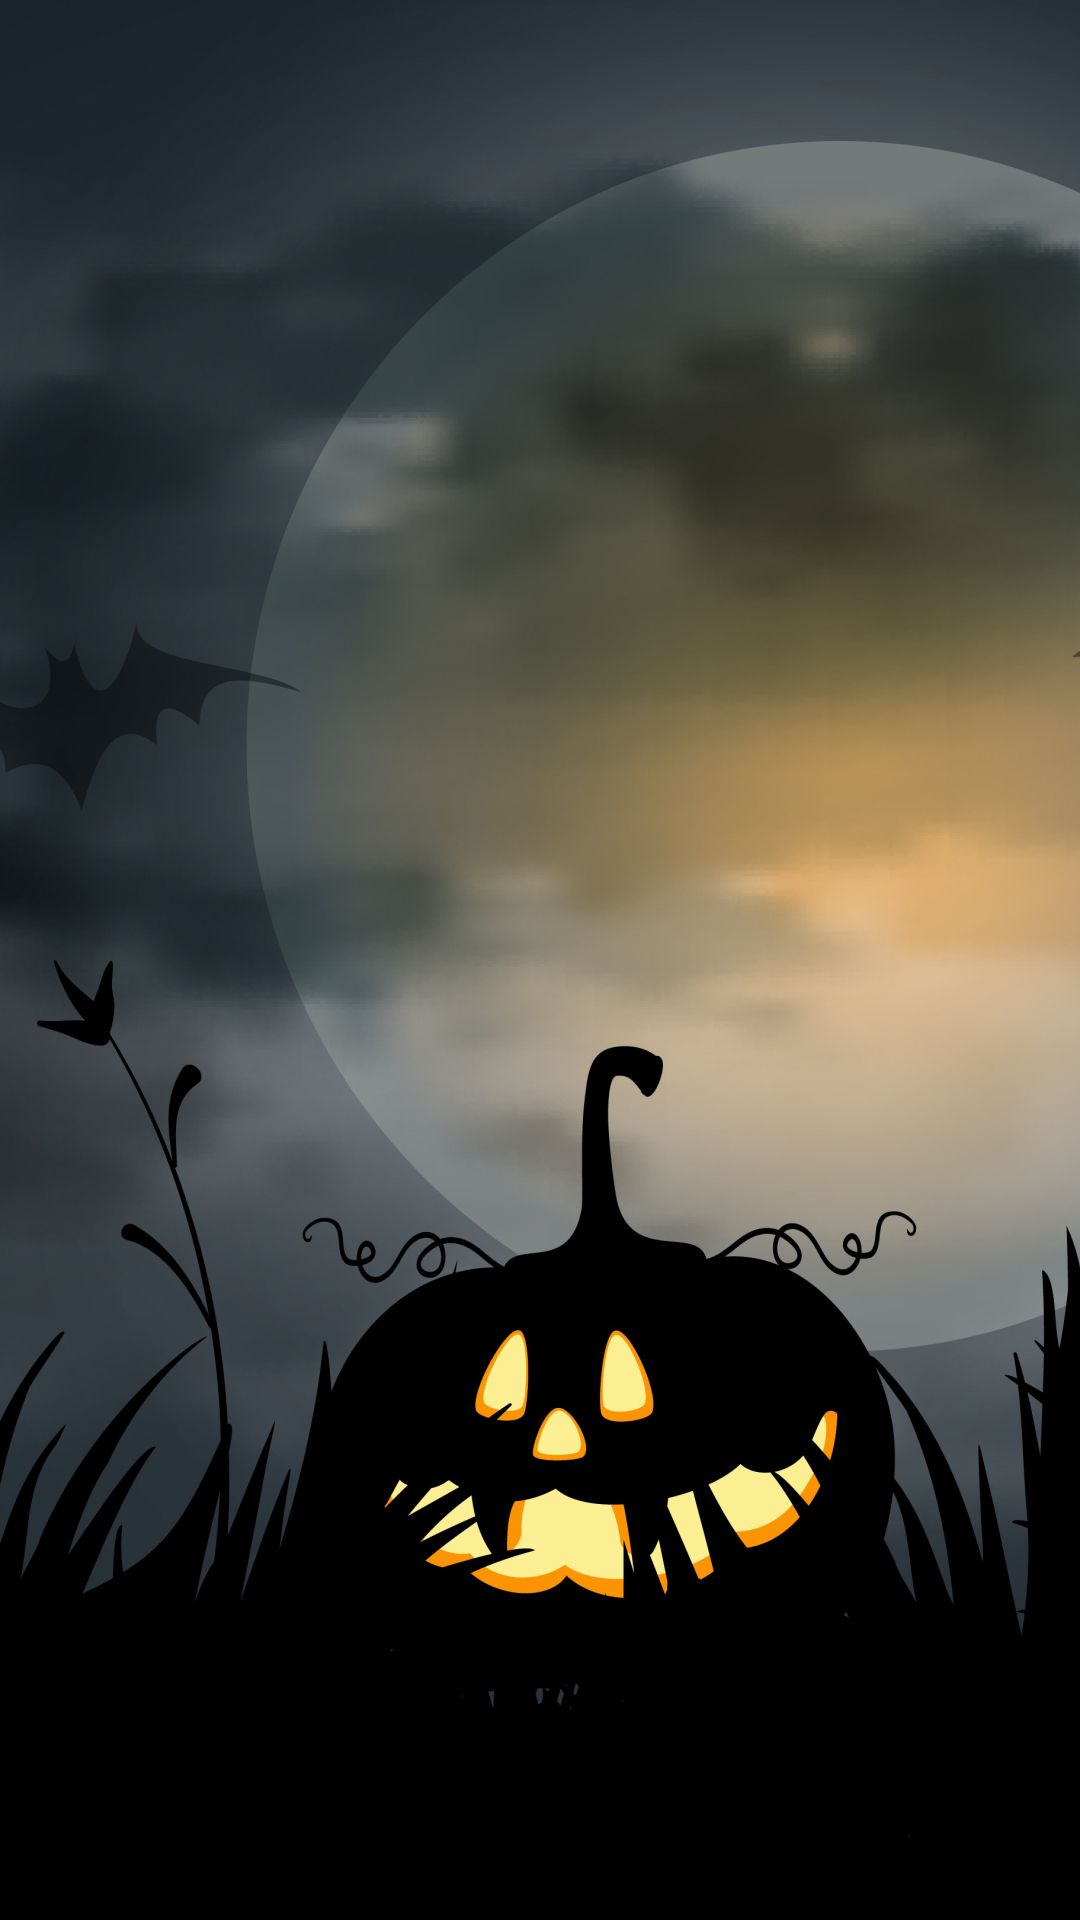 Hd Wallpaper 97 Halloween Backgrounds Halloween Wallpaper Halloween Images